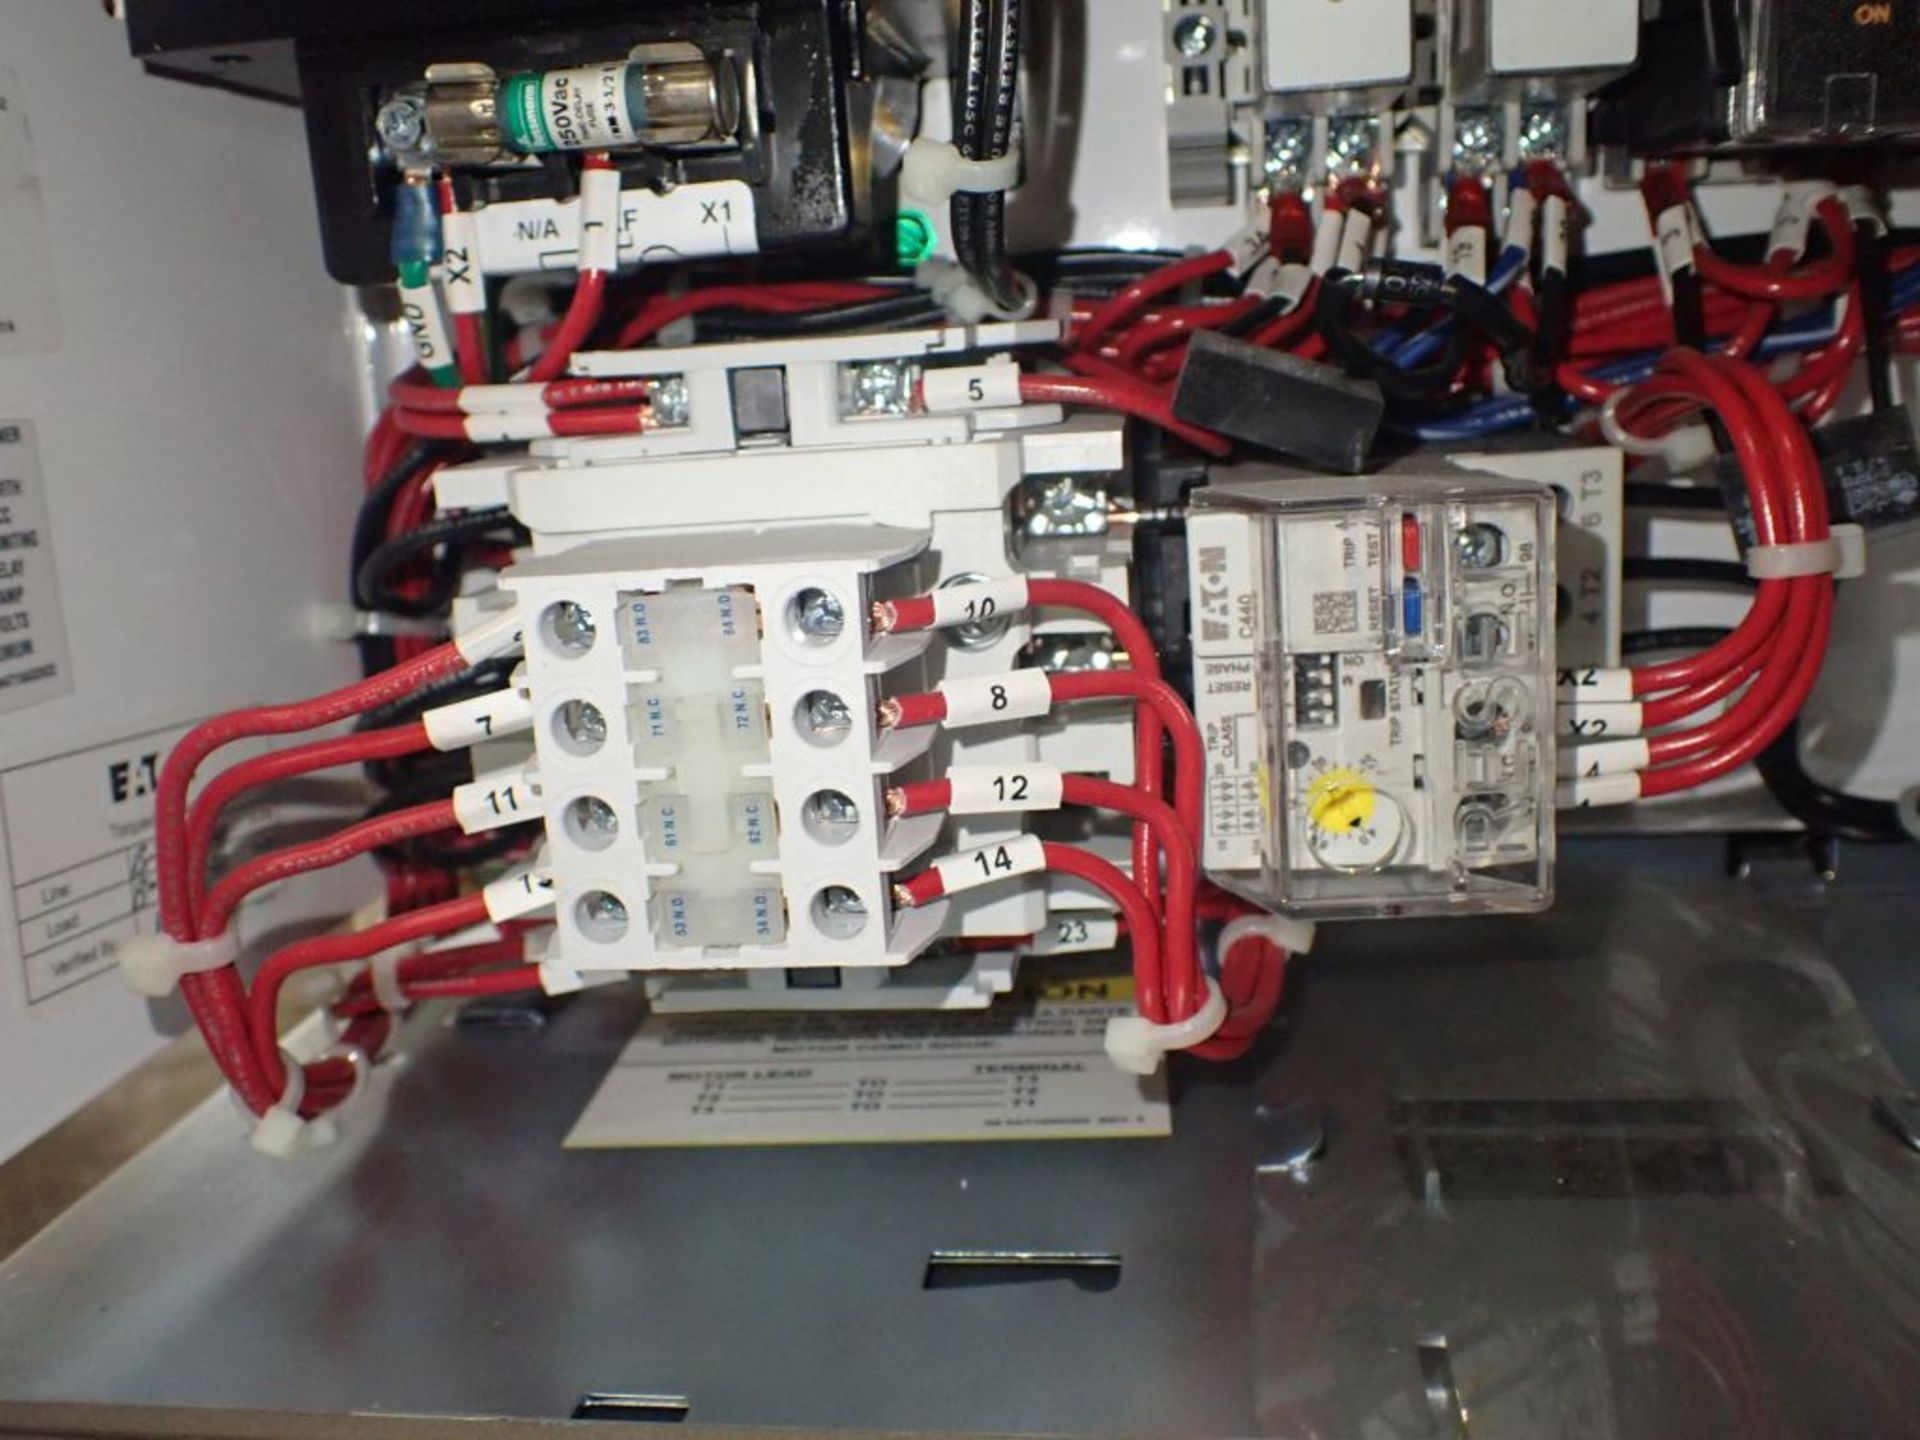 Eaton Freedom 2100 Series Motor Control Center | (2) F206-7A-10HP; (3) F206-15A-10HP; (1) FDRB-100A; - Image 58 of 87